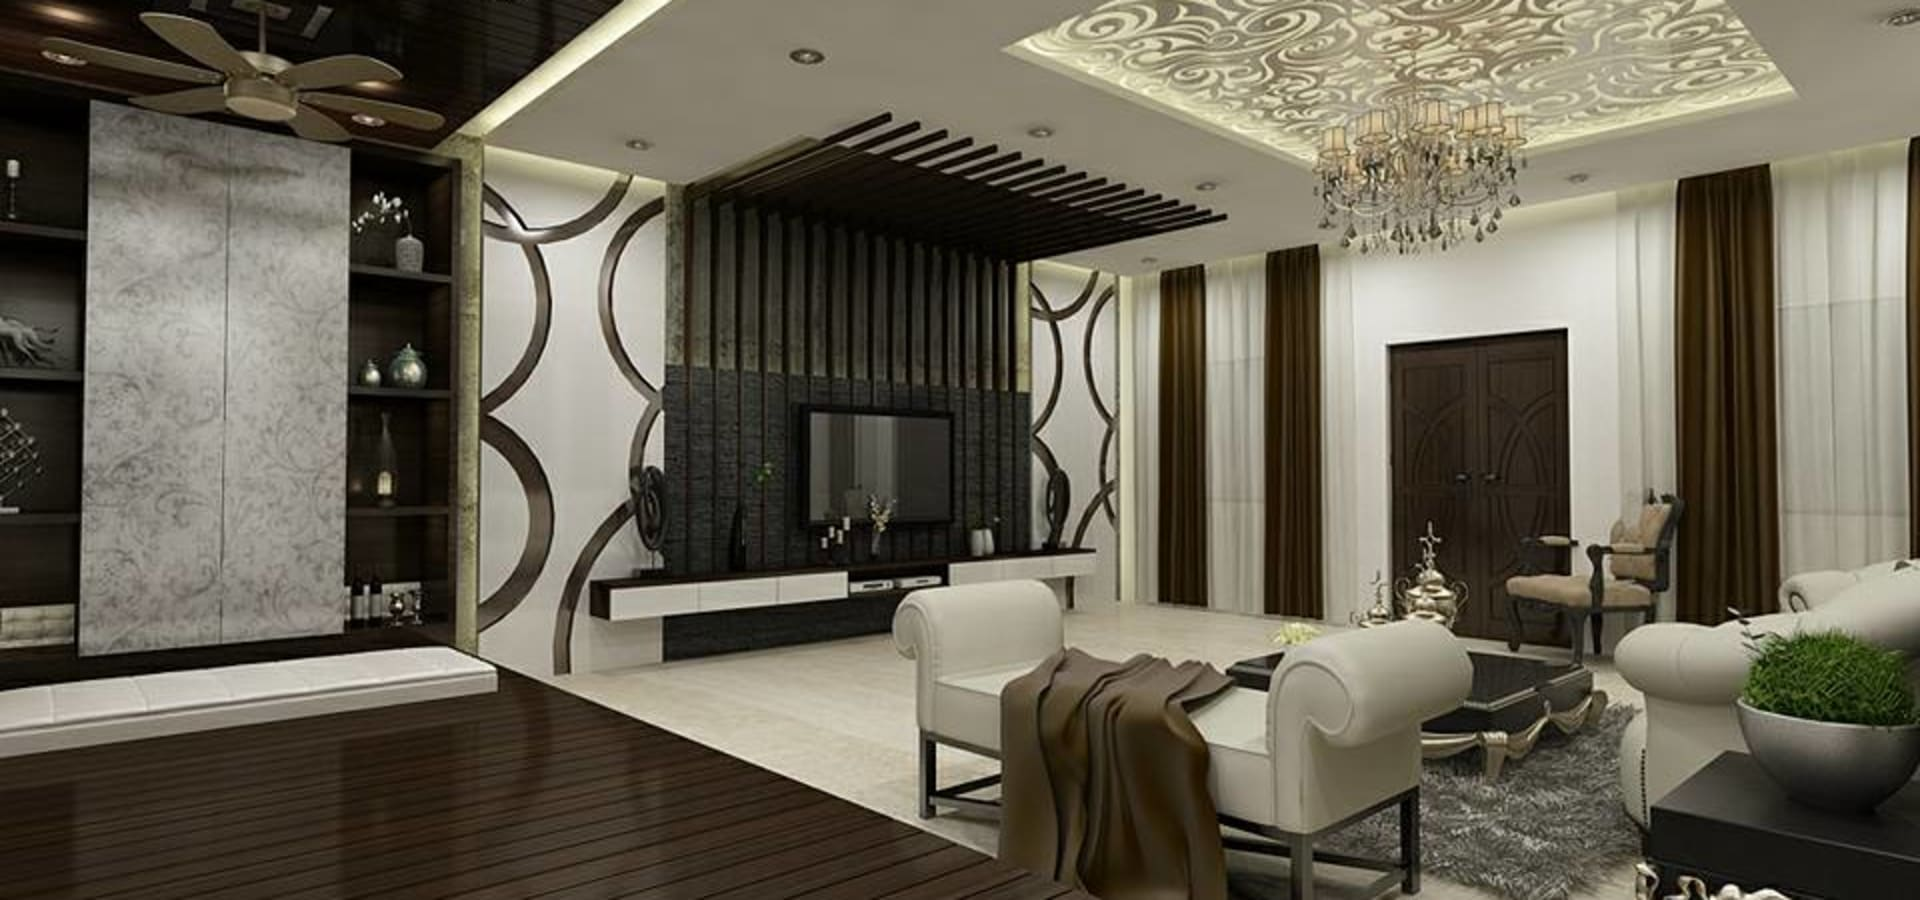 Splendid Interior & Designers Pvt. Ltd